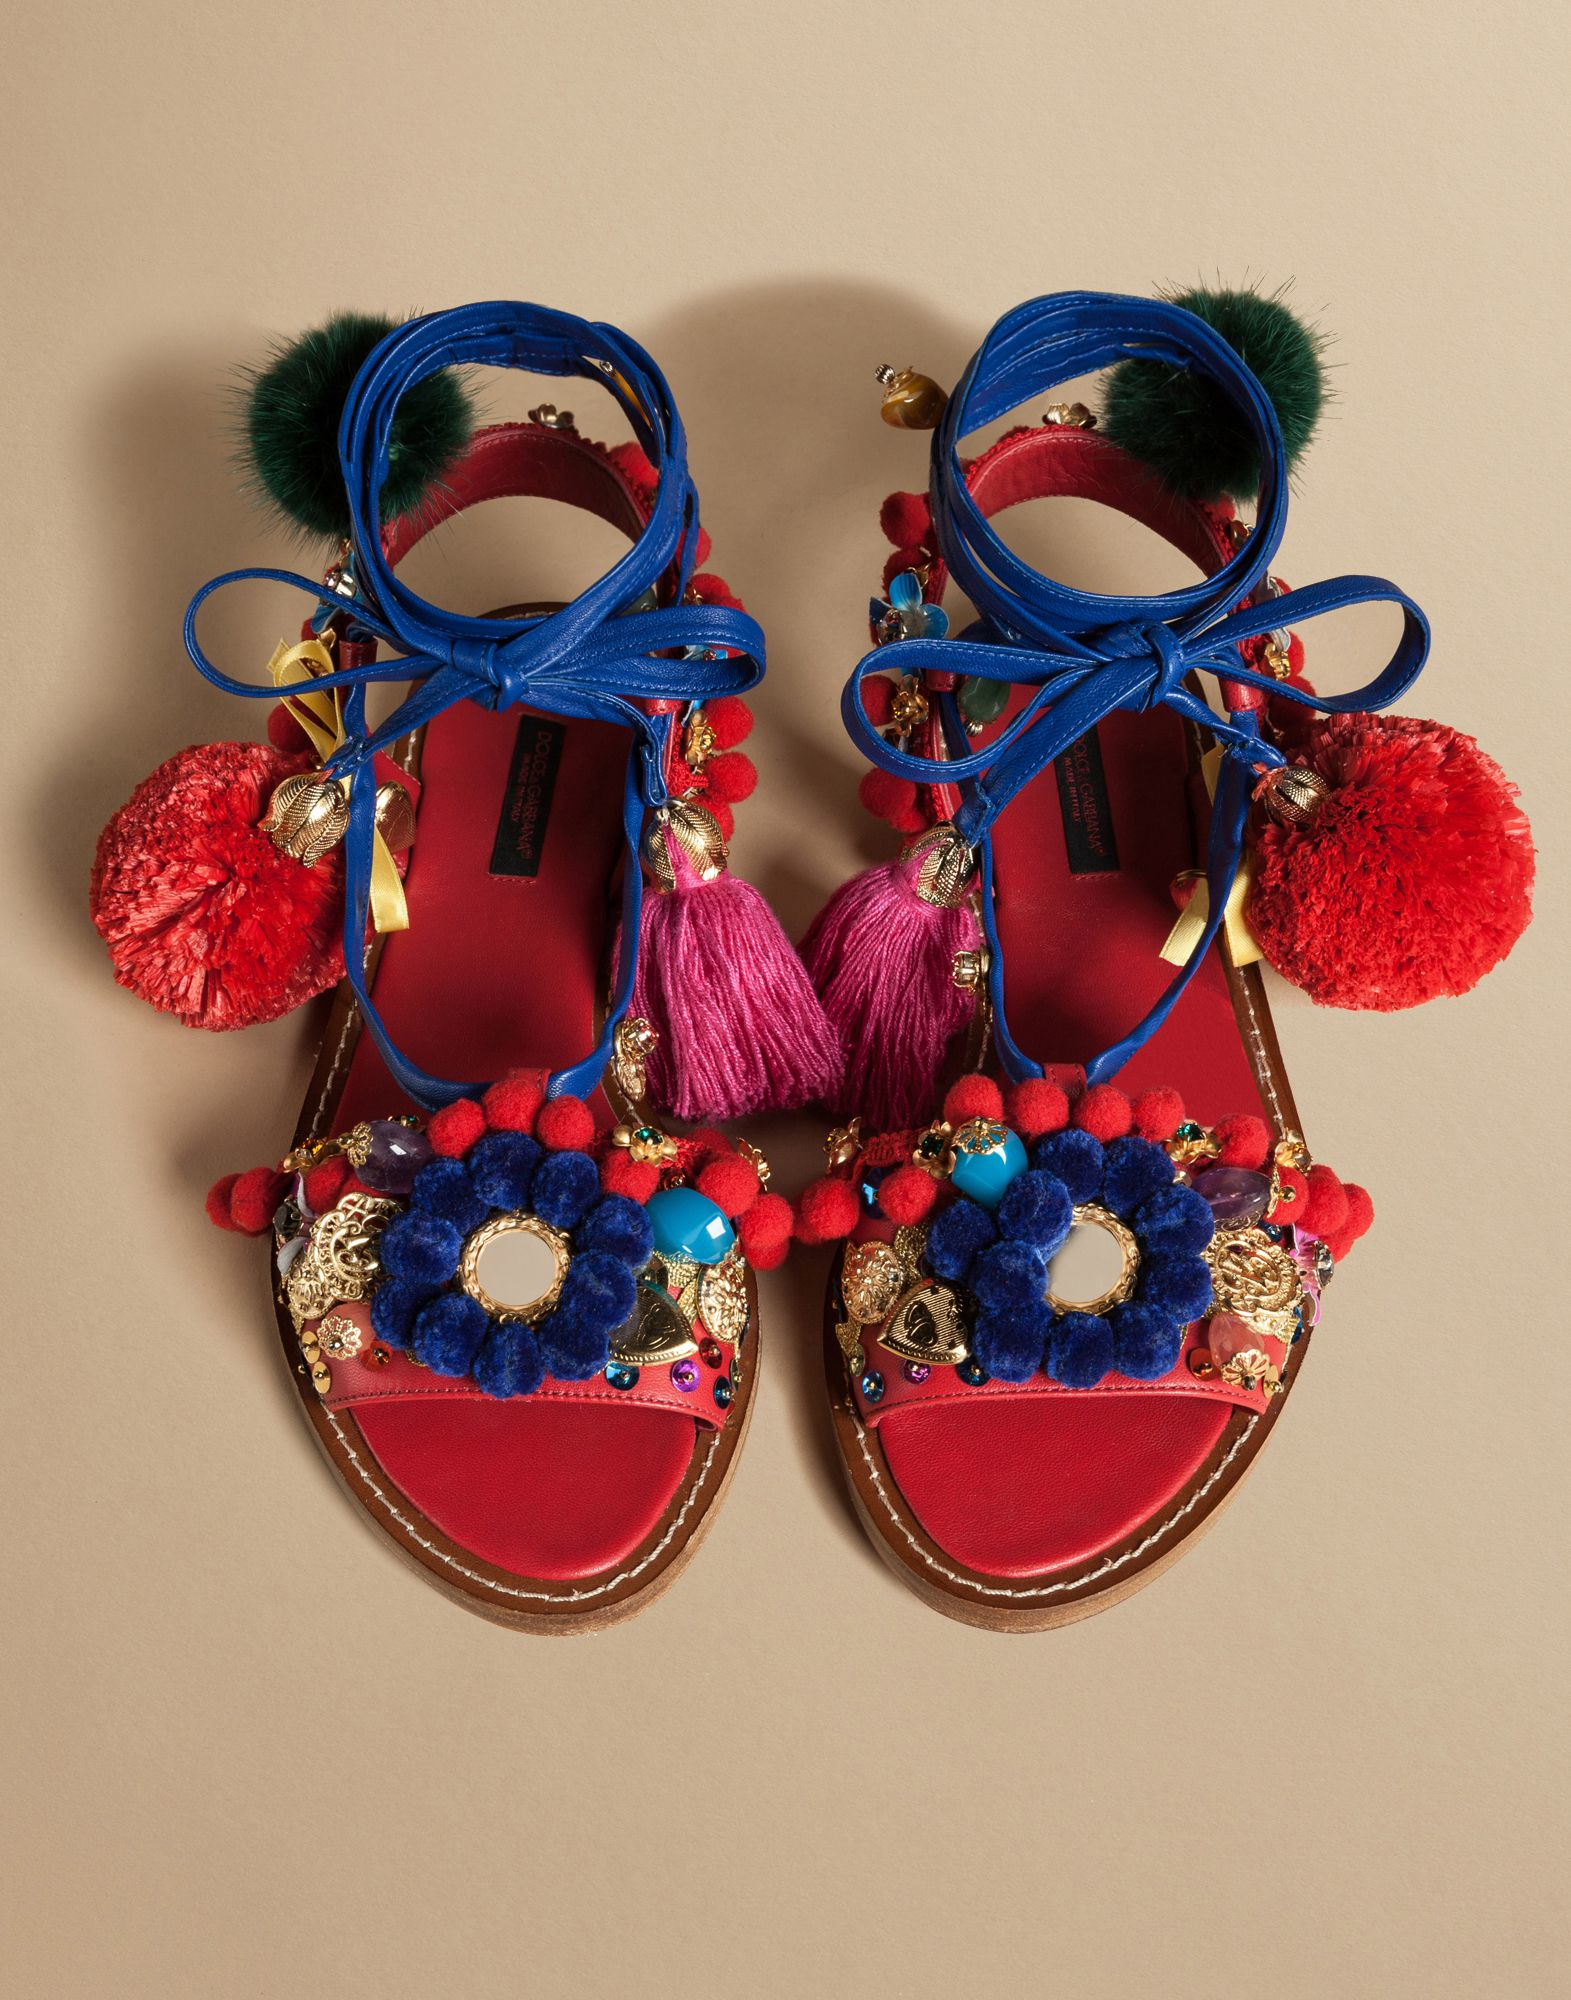 Dolce & Gabbana Pom-Pom Leather Lace-Up Sandals in Red